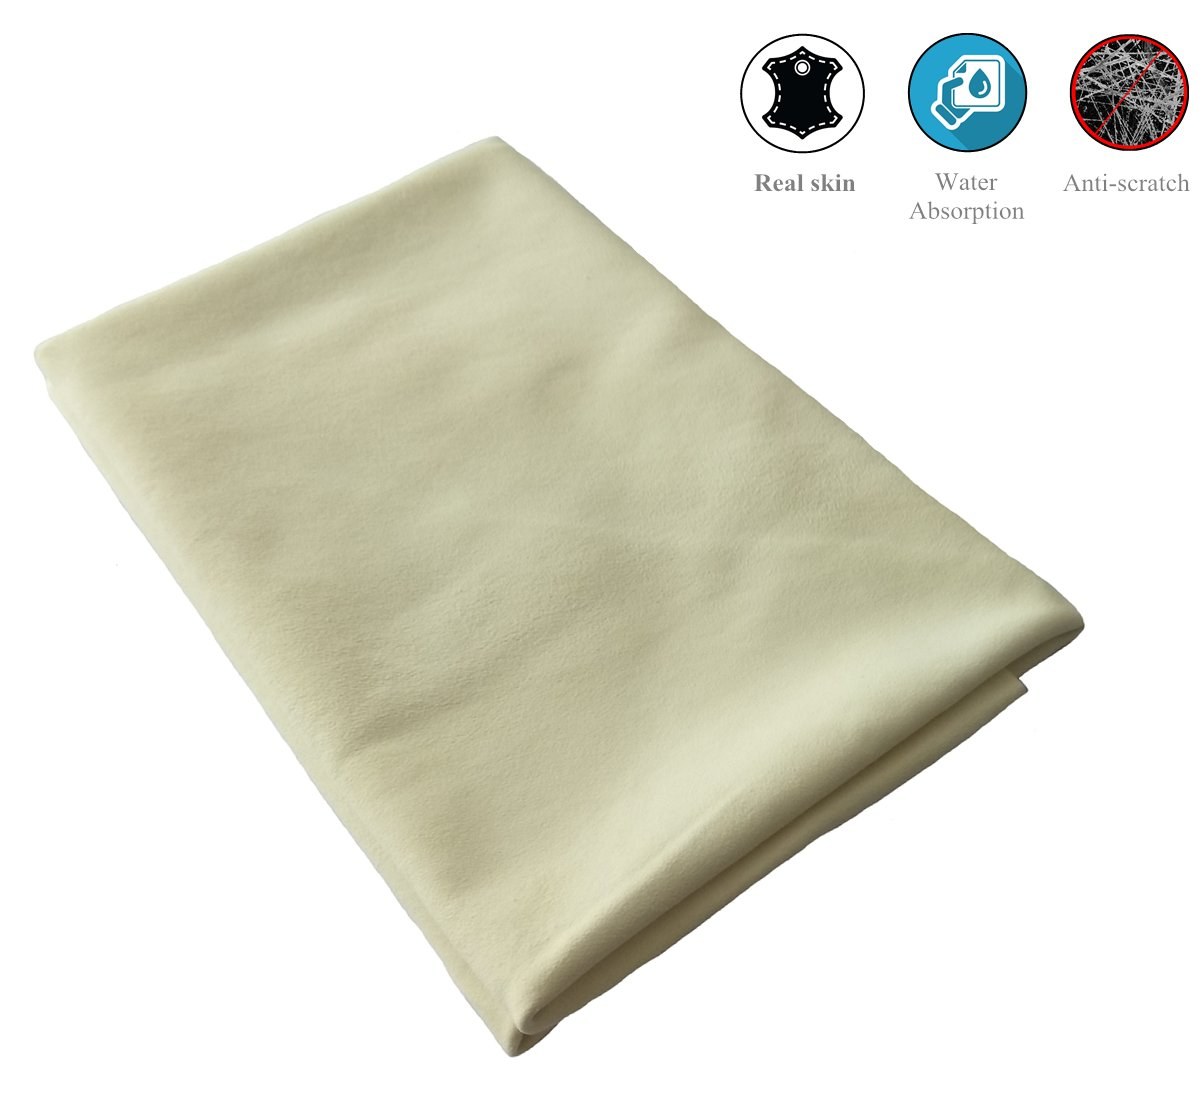 Okayda Super Soft Shammy Towel for Car Wash Care Natural Fabric Chamois Drying Towel 3.5 Sq.ft